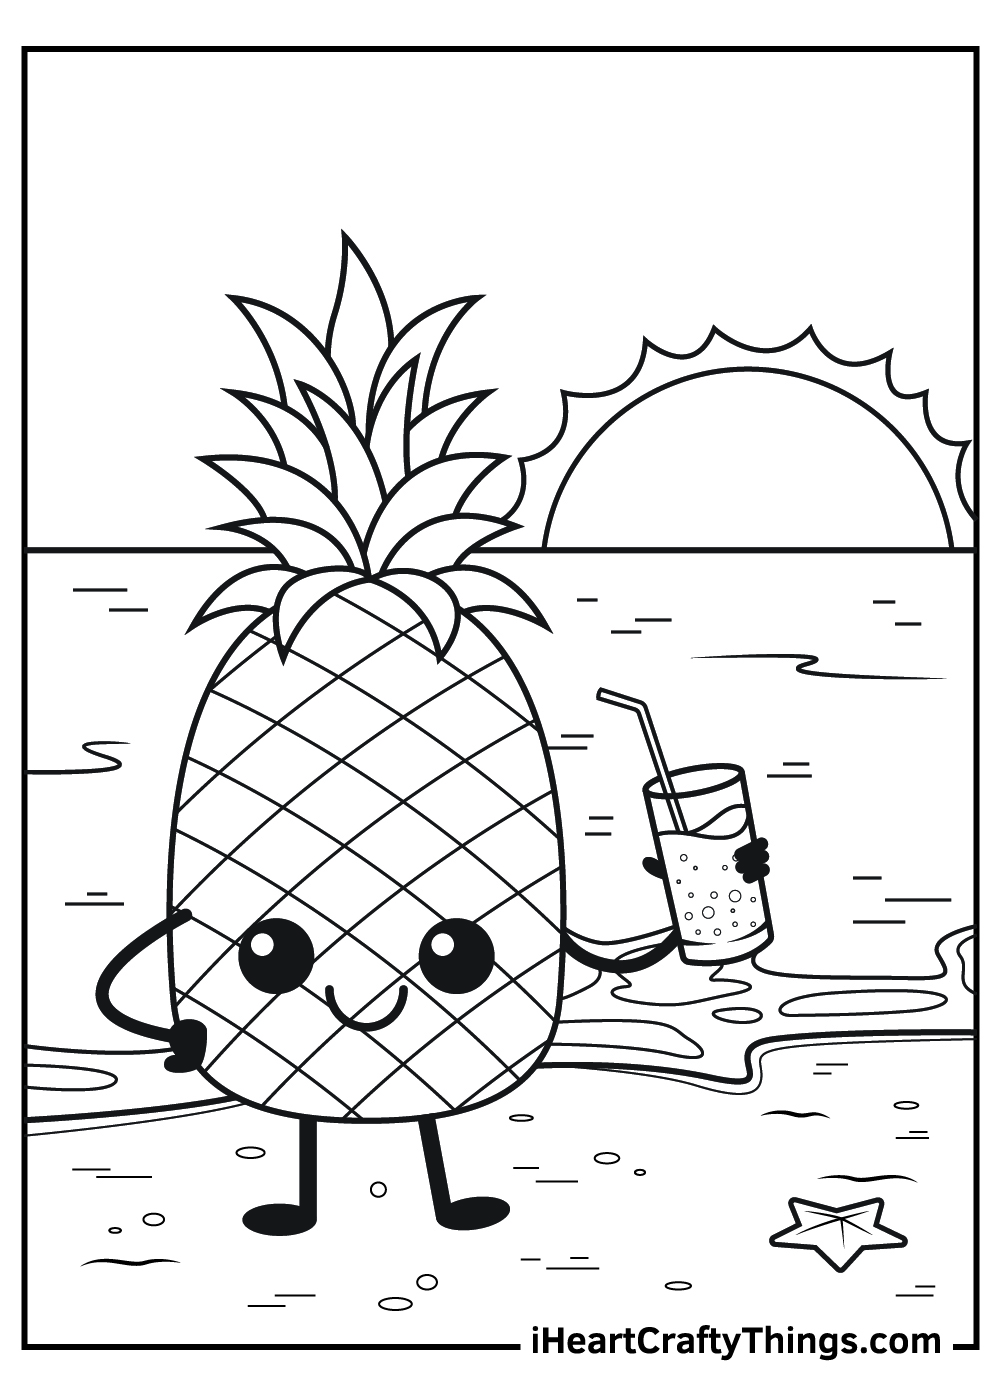 cute and funny pineapple coloring pages